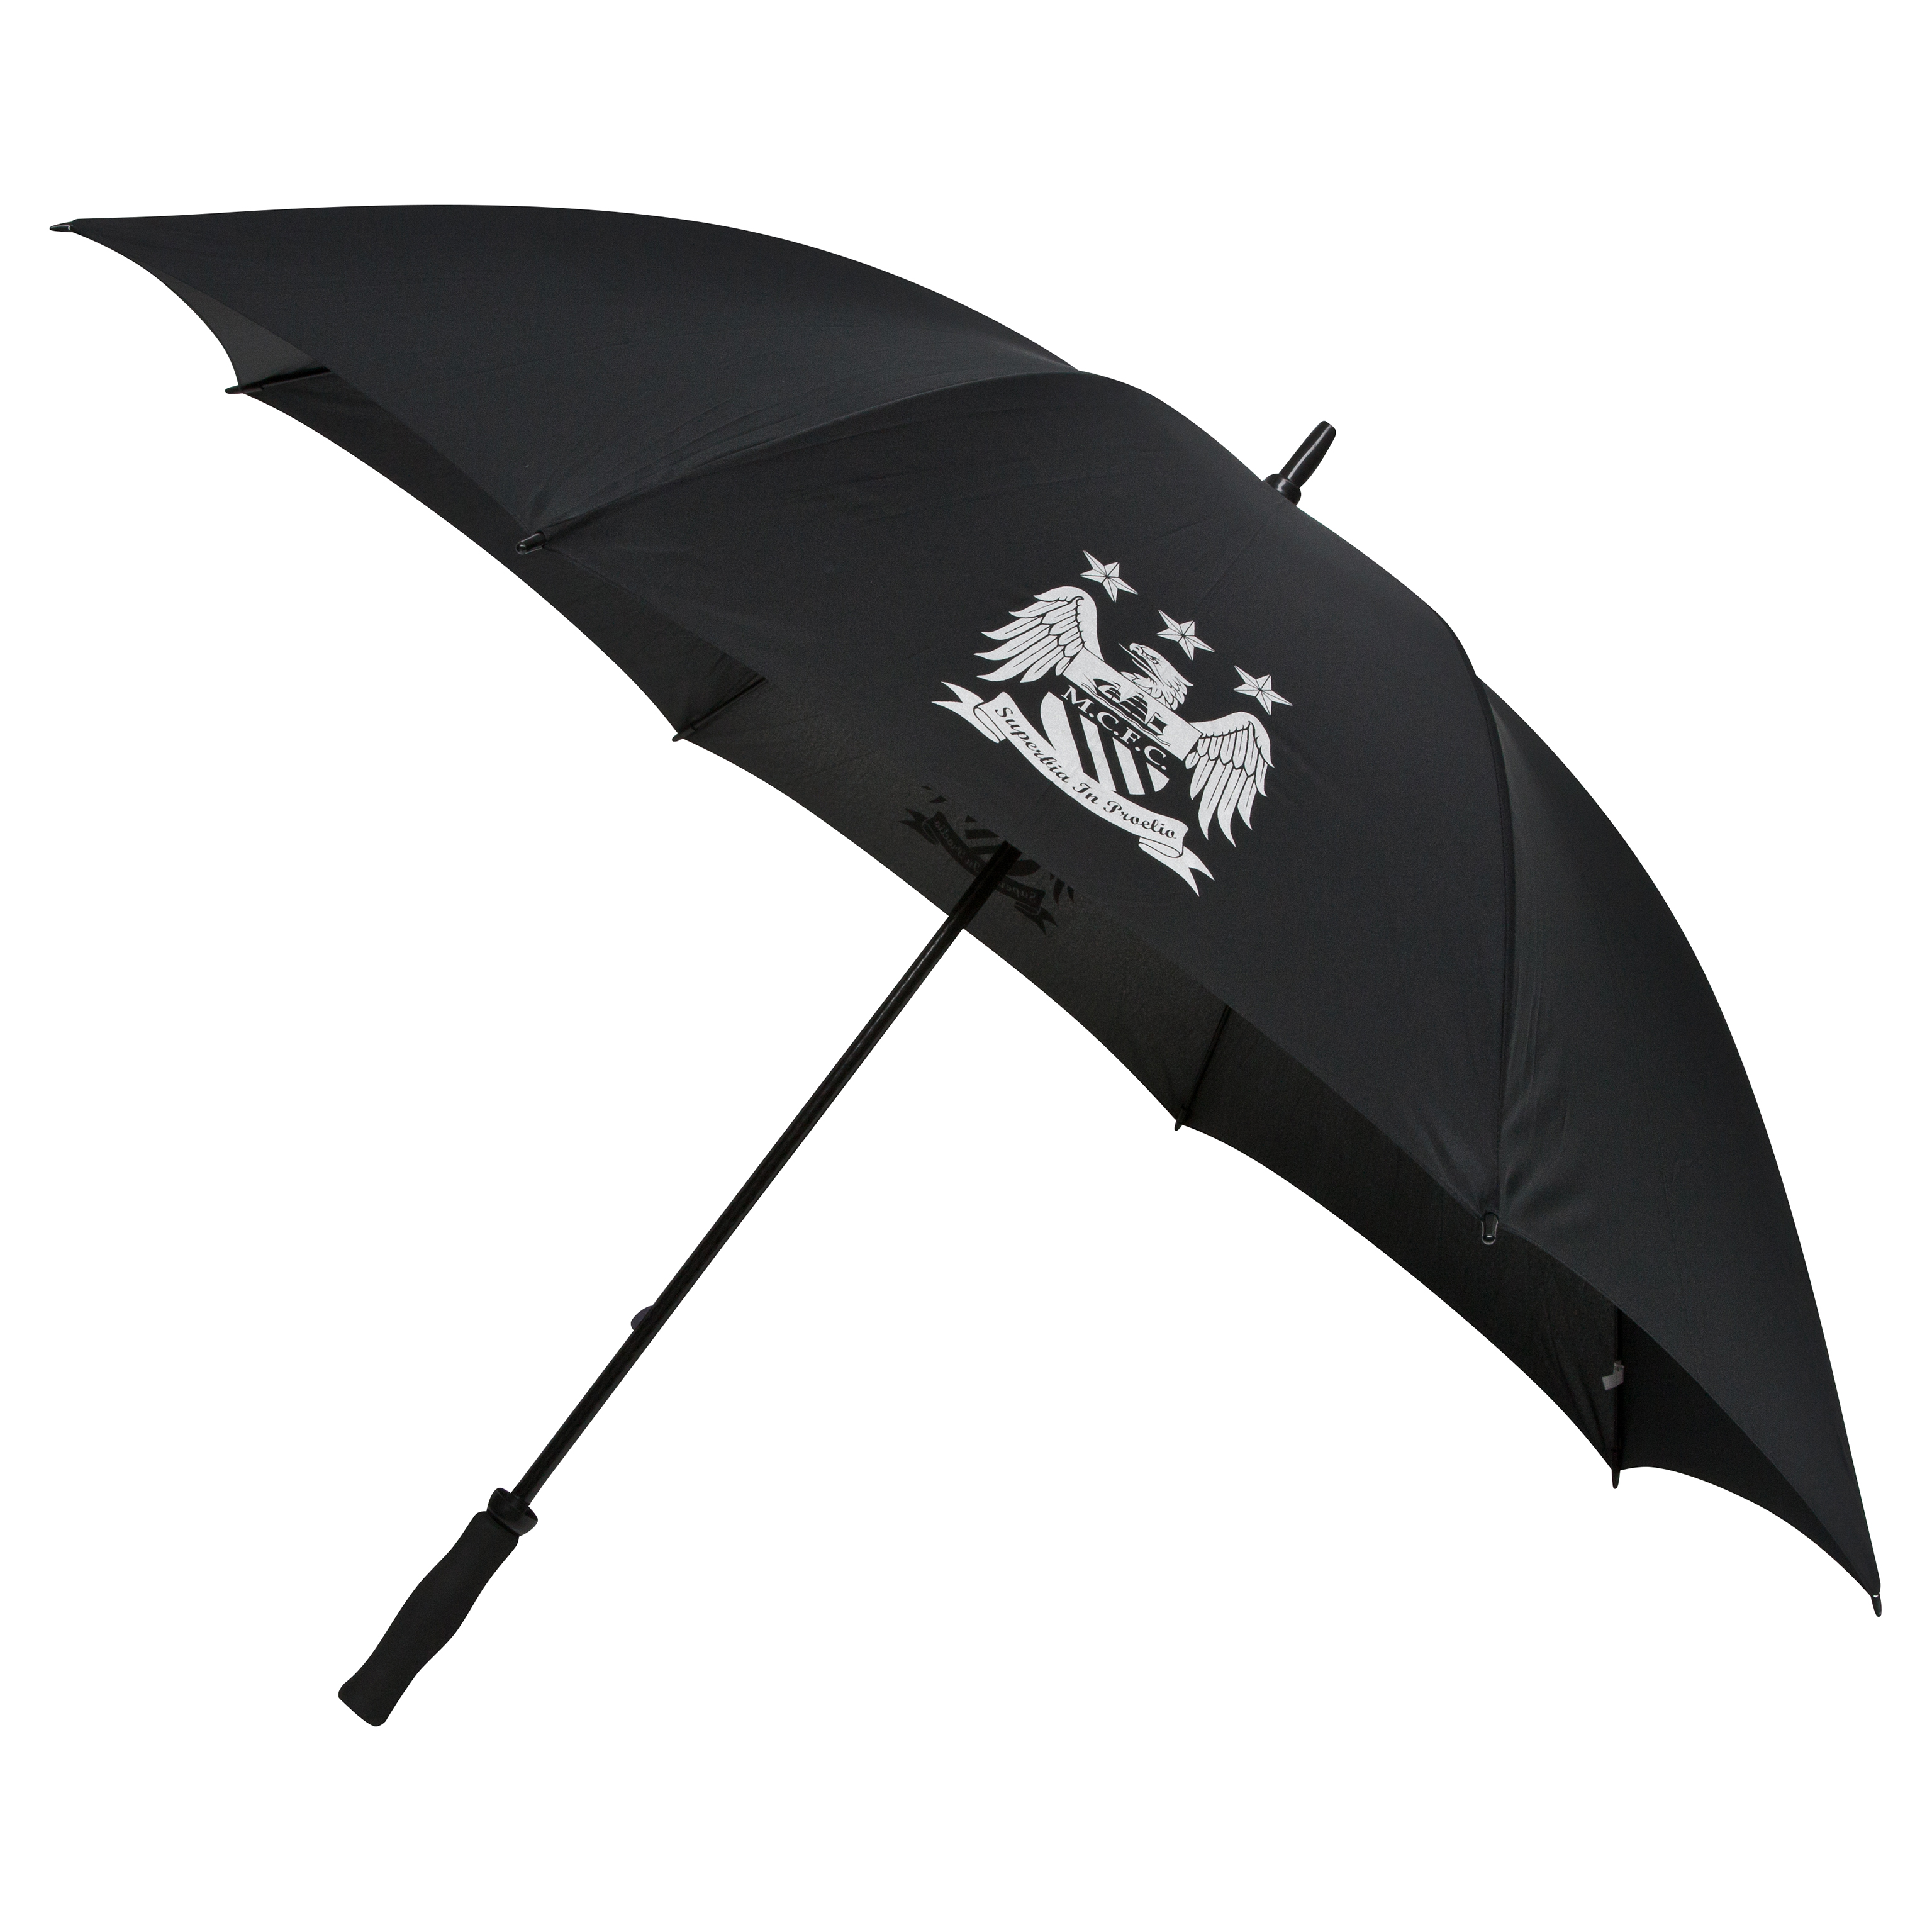 Manchester City Executive Single Canopy Golf Umbrella